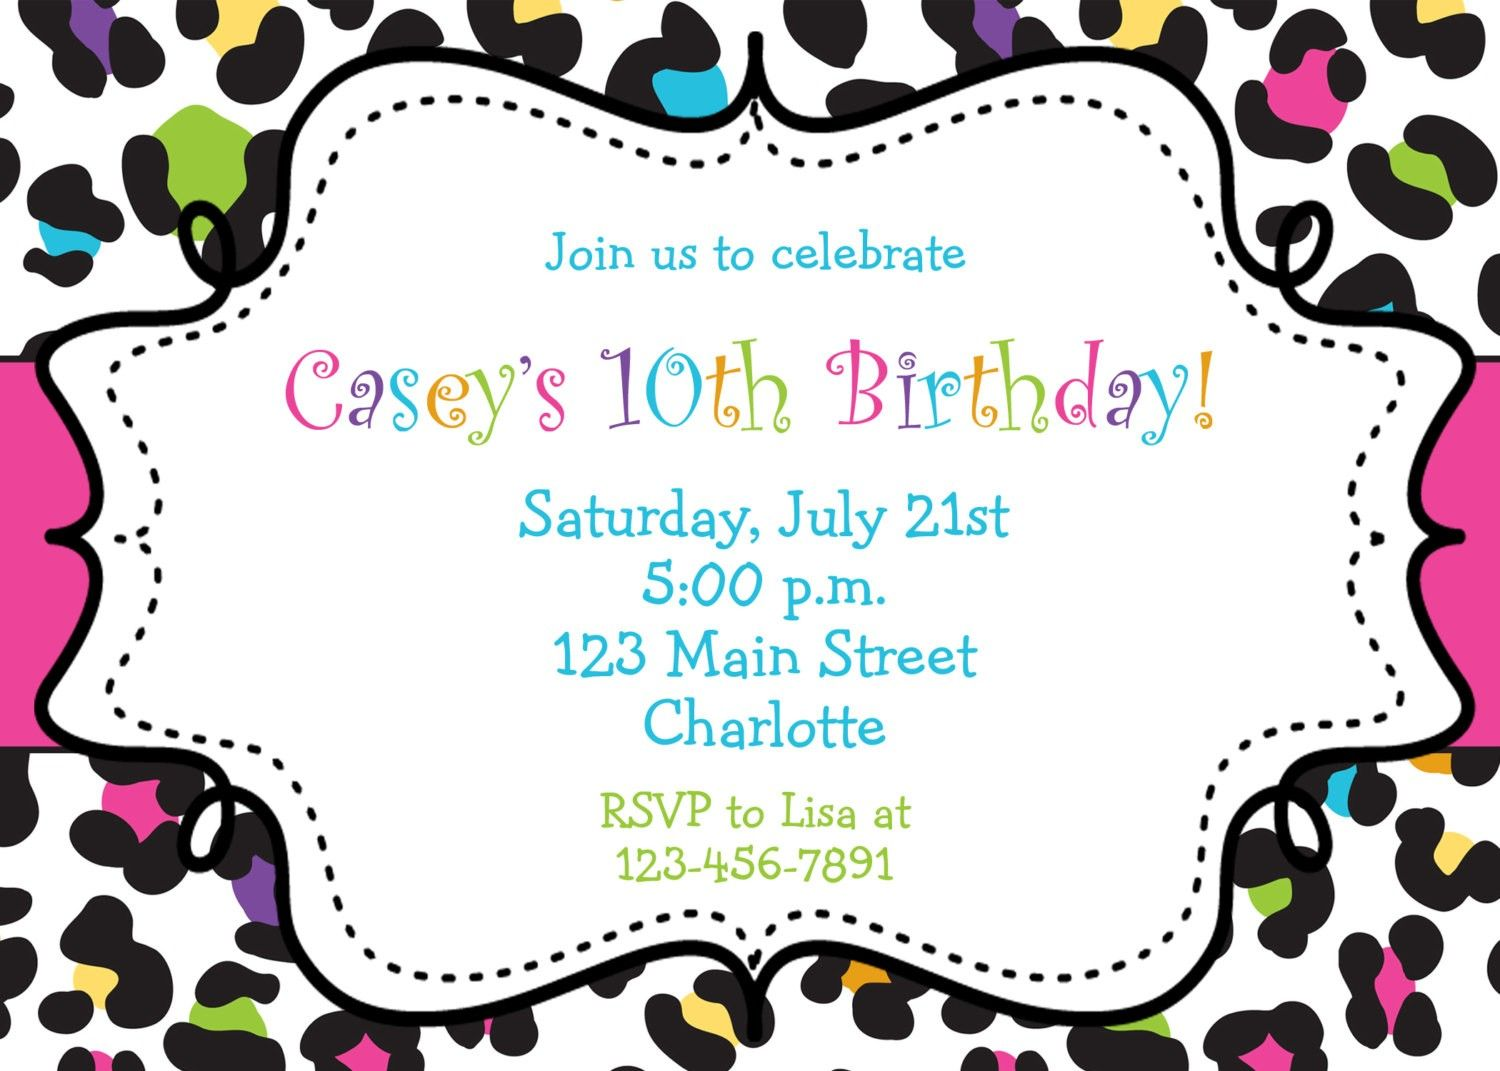 10th birthday invitation templates free ; 1d0516517ec9a505b9a5d27c993a865a